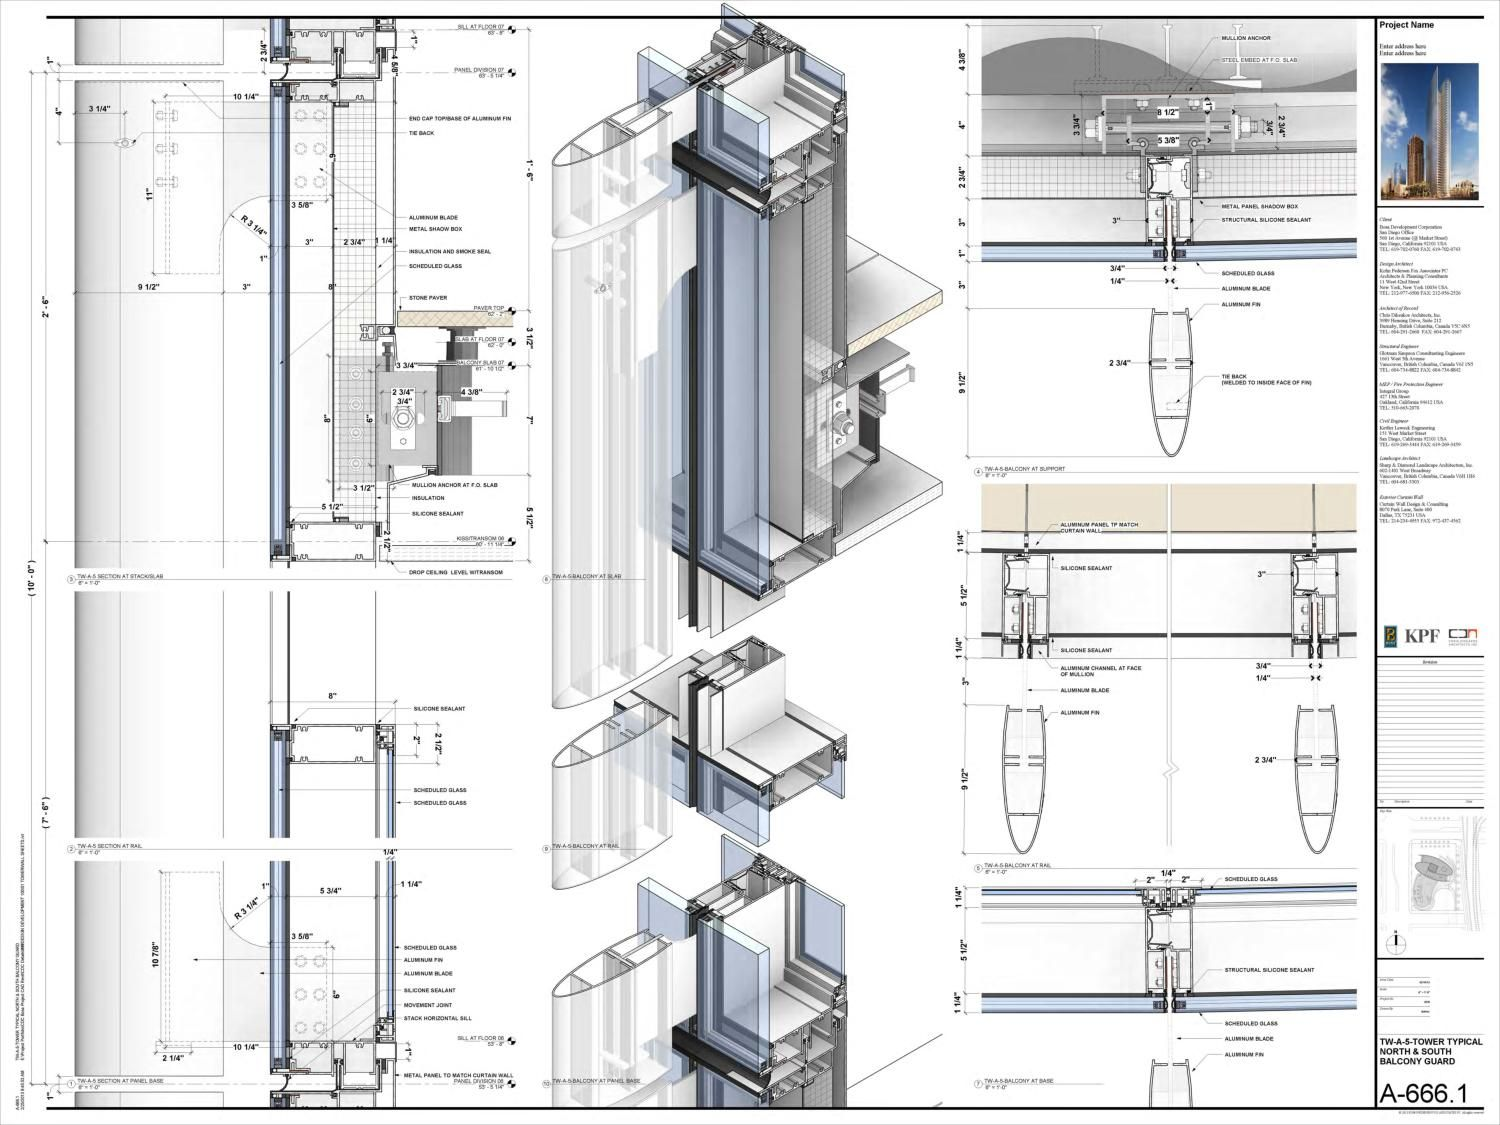 Nathaniel richards revit sample | shop drawing | Presentation layout